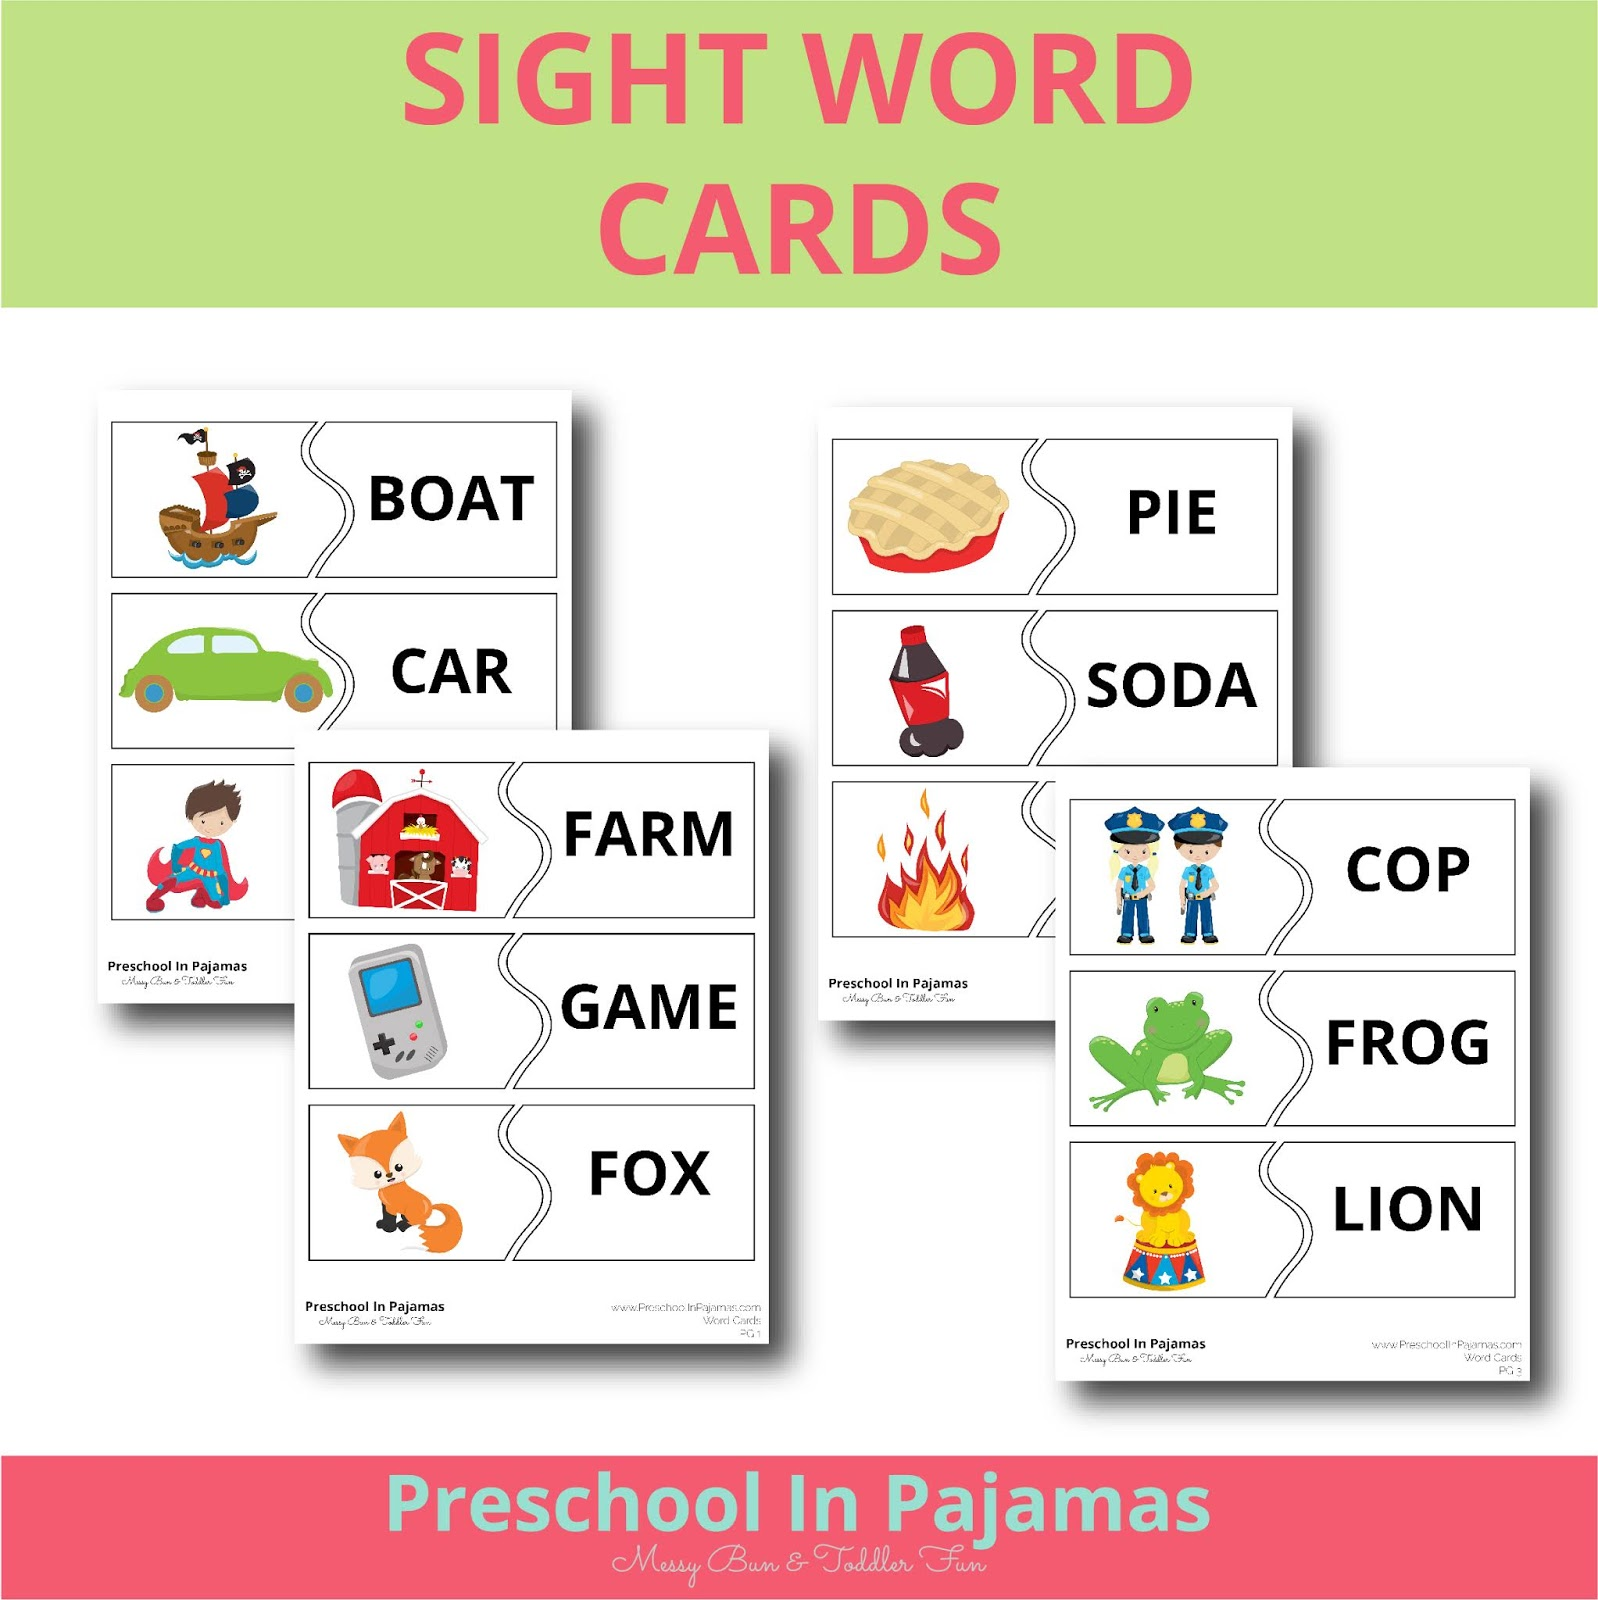 Free Preschool Sight Words Card Printable